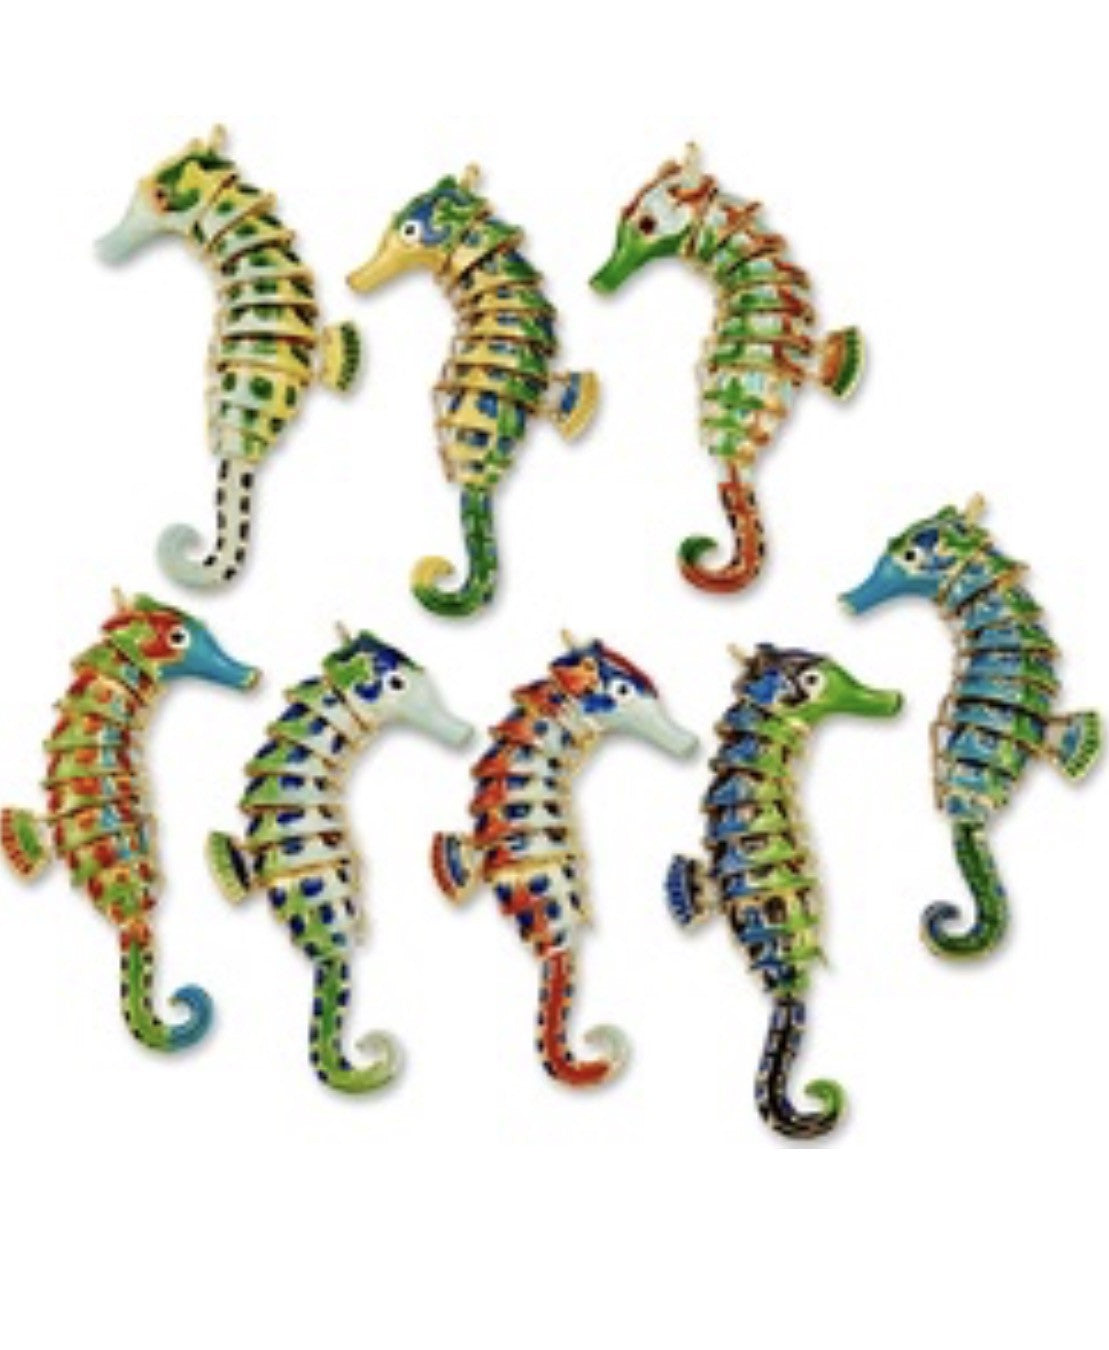 Articulated Seahorse Ornament